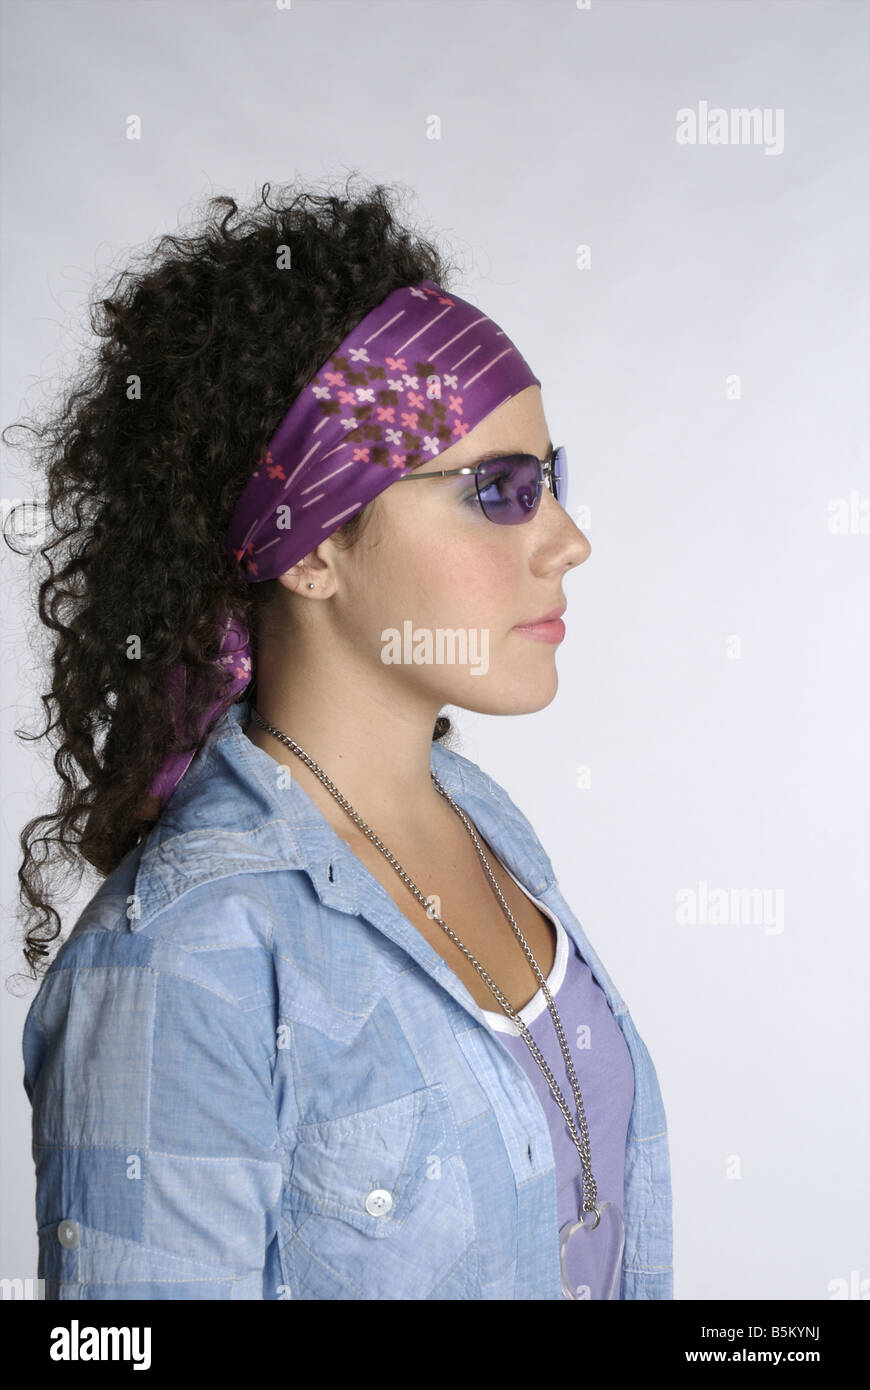 Female adolescent with frizzy hair - Stock Image